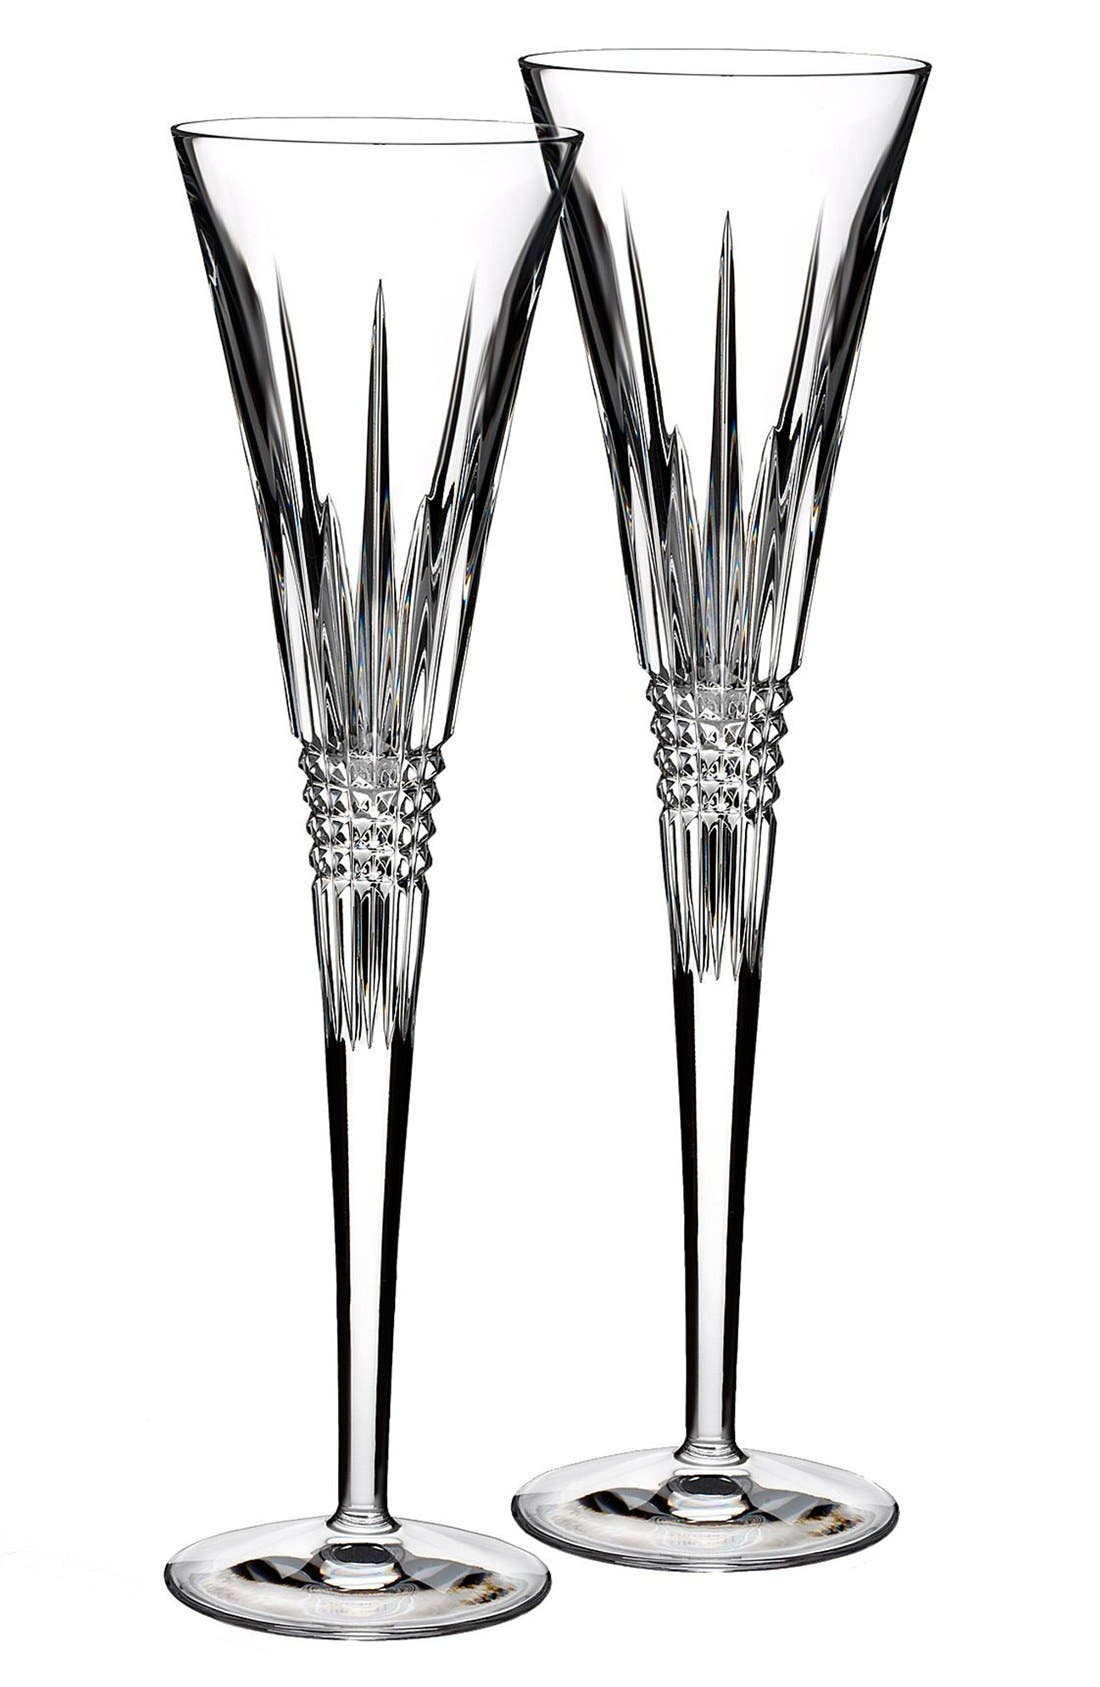 Main Image - Waterford 'Lismore Diamond' Lead Crystal Champagne Flutes (Set of 2)